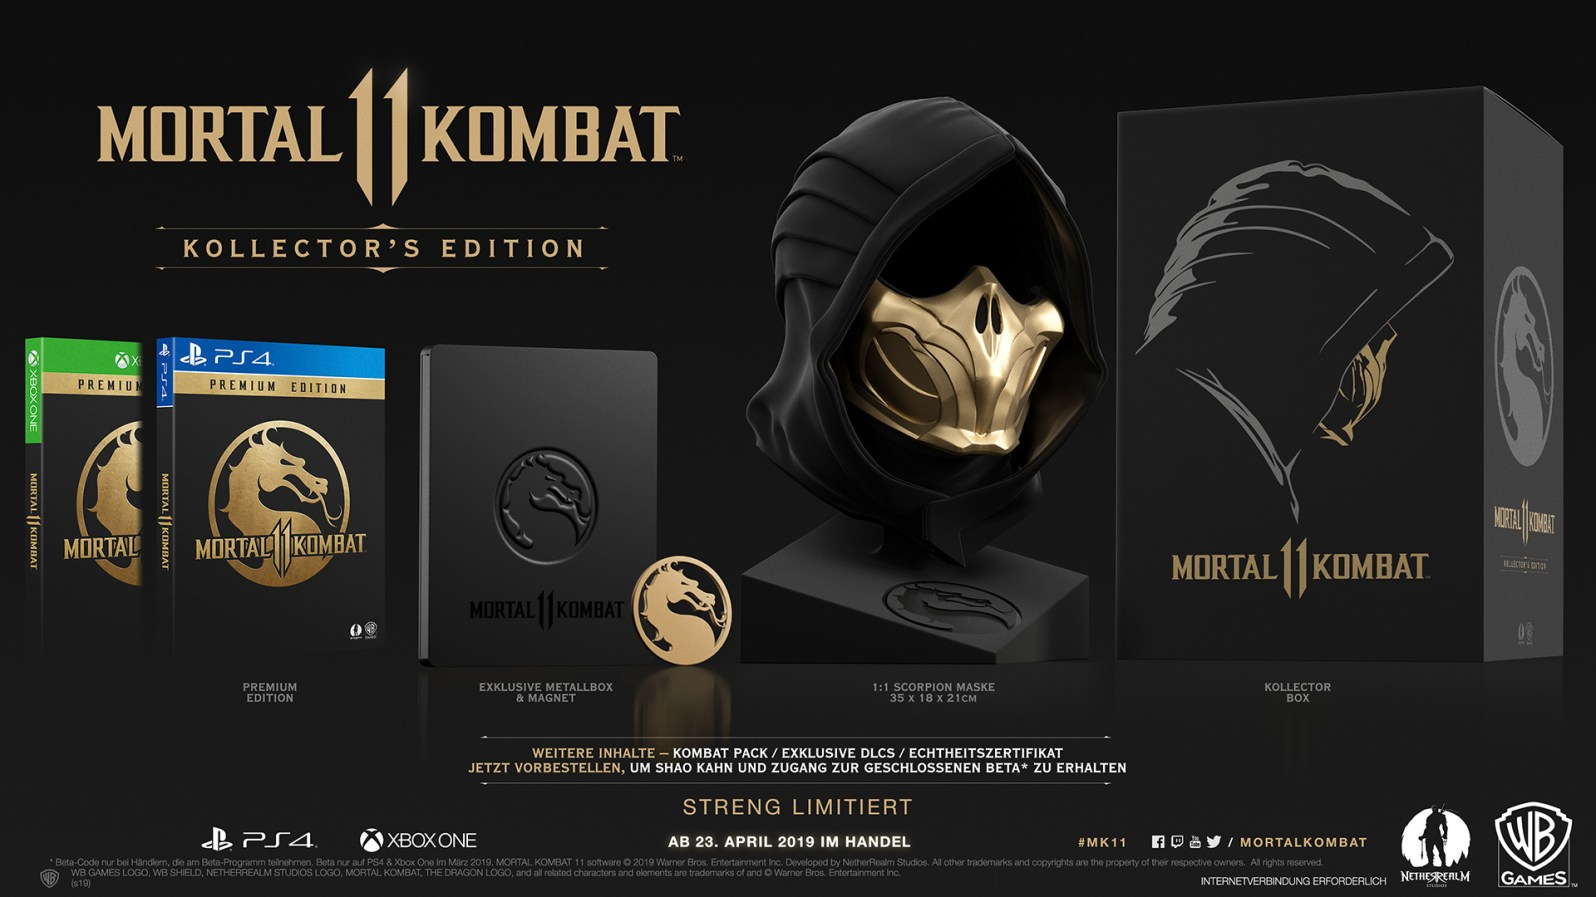 Quelle: Warner Bros. - Mortal Kombat 11 Kollector's Edition